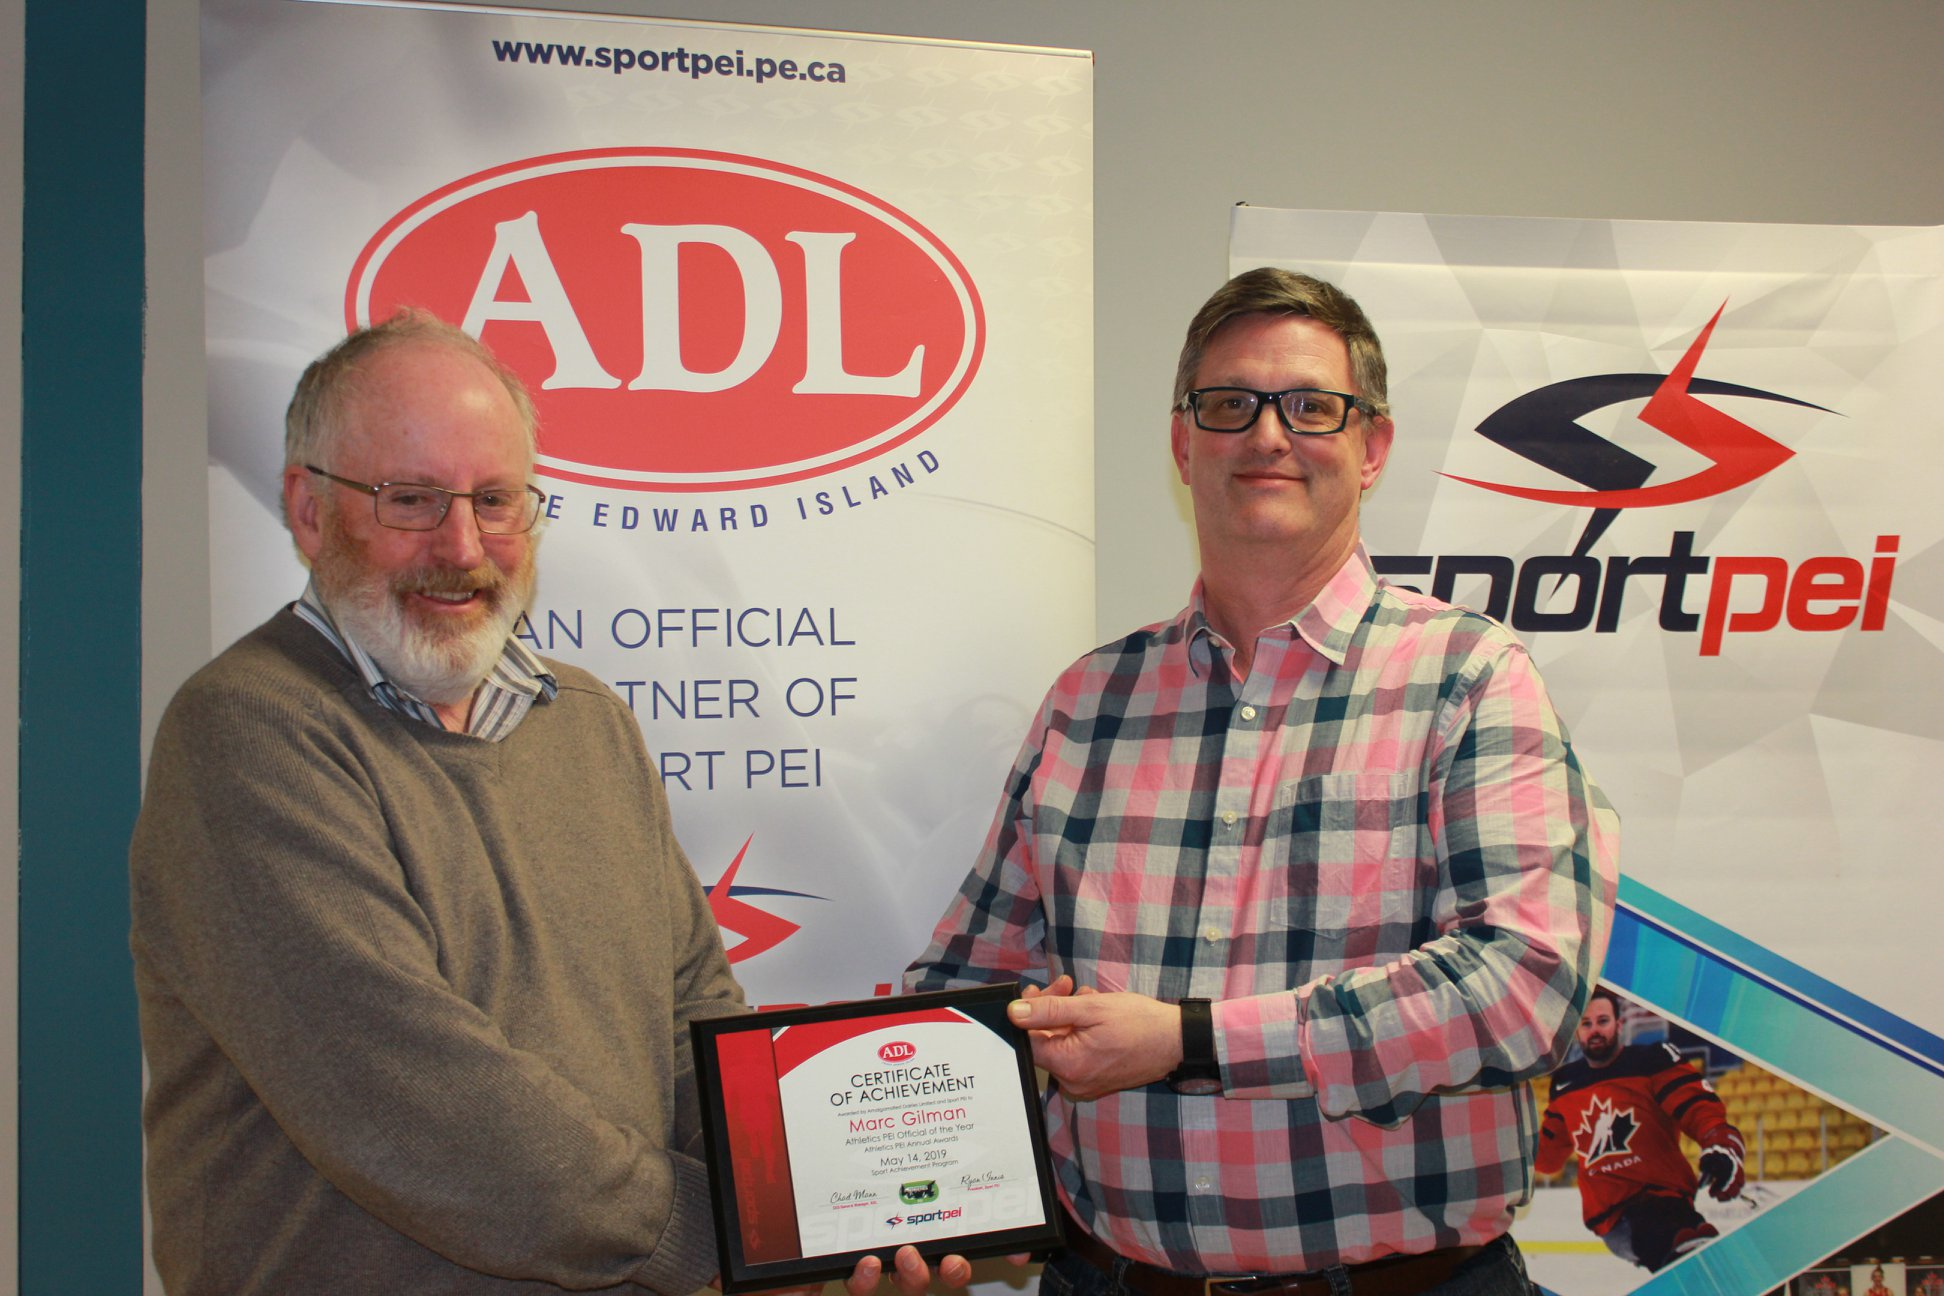 Athletics PEI ADL Awards